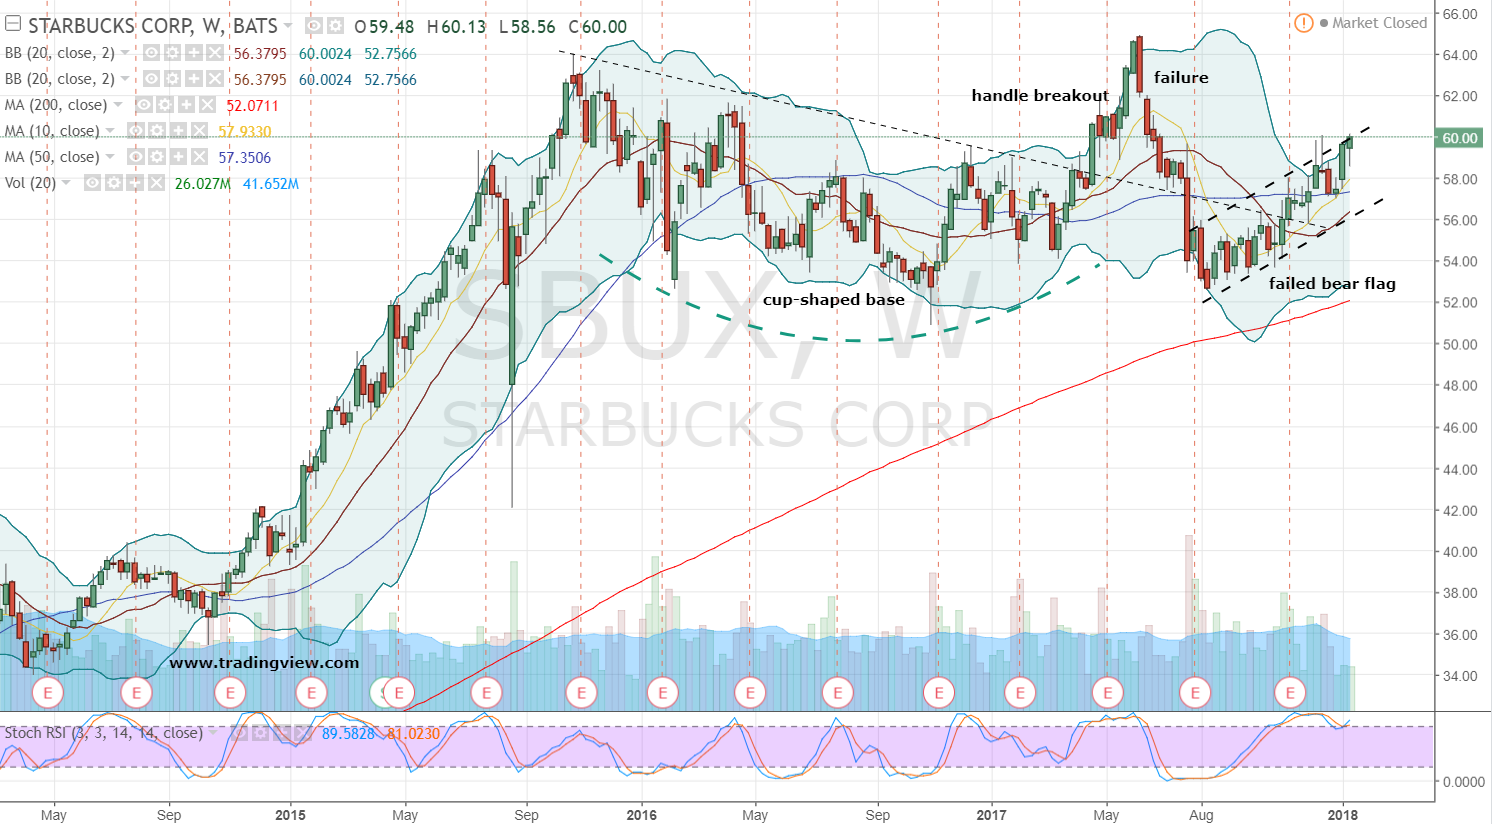 Purchases 9680 Shares of Starbucks Co. (SBUX)